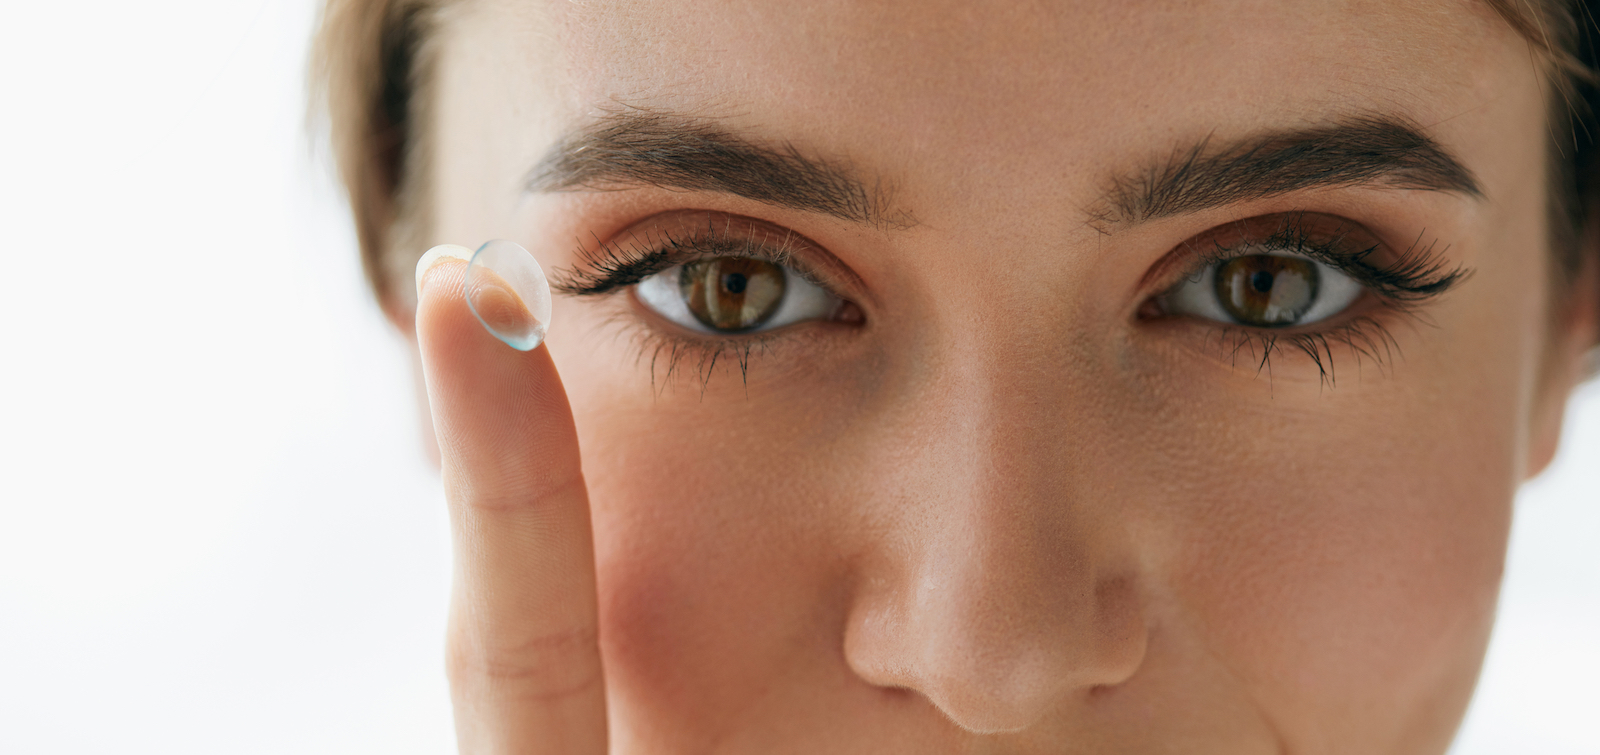 Close up of woman holding a contact lens